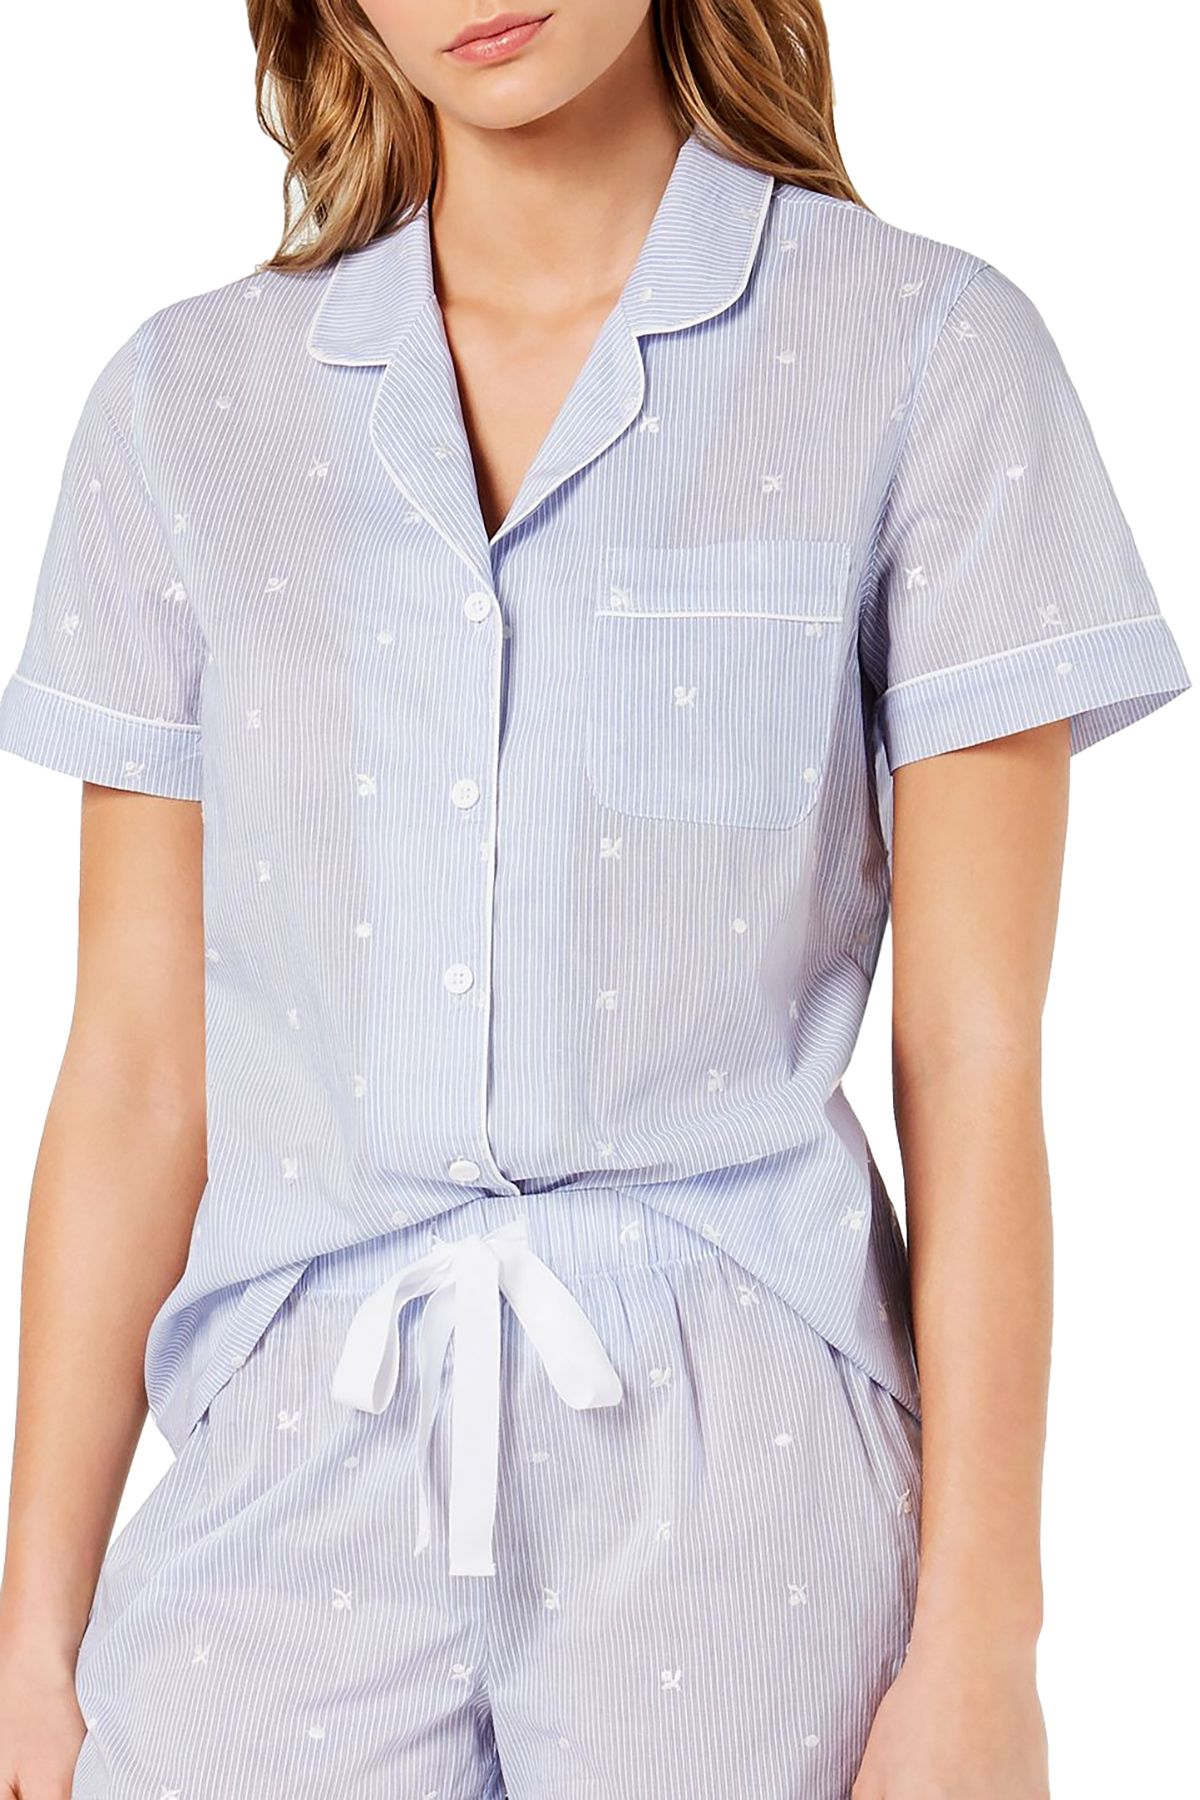 Charter Club Notch Collar Cotton Pajama Top in Embroidery Stripe Blue